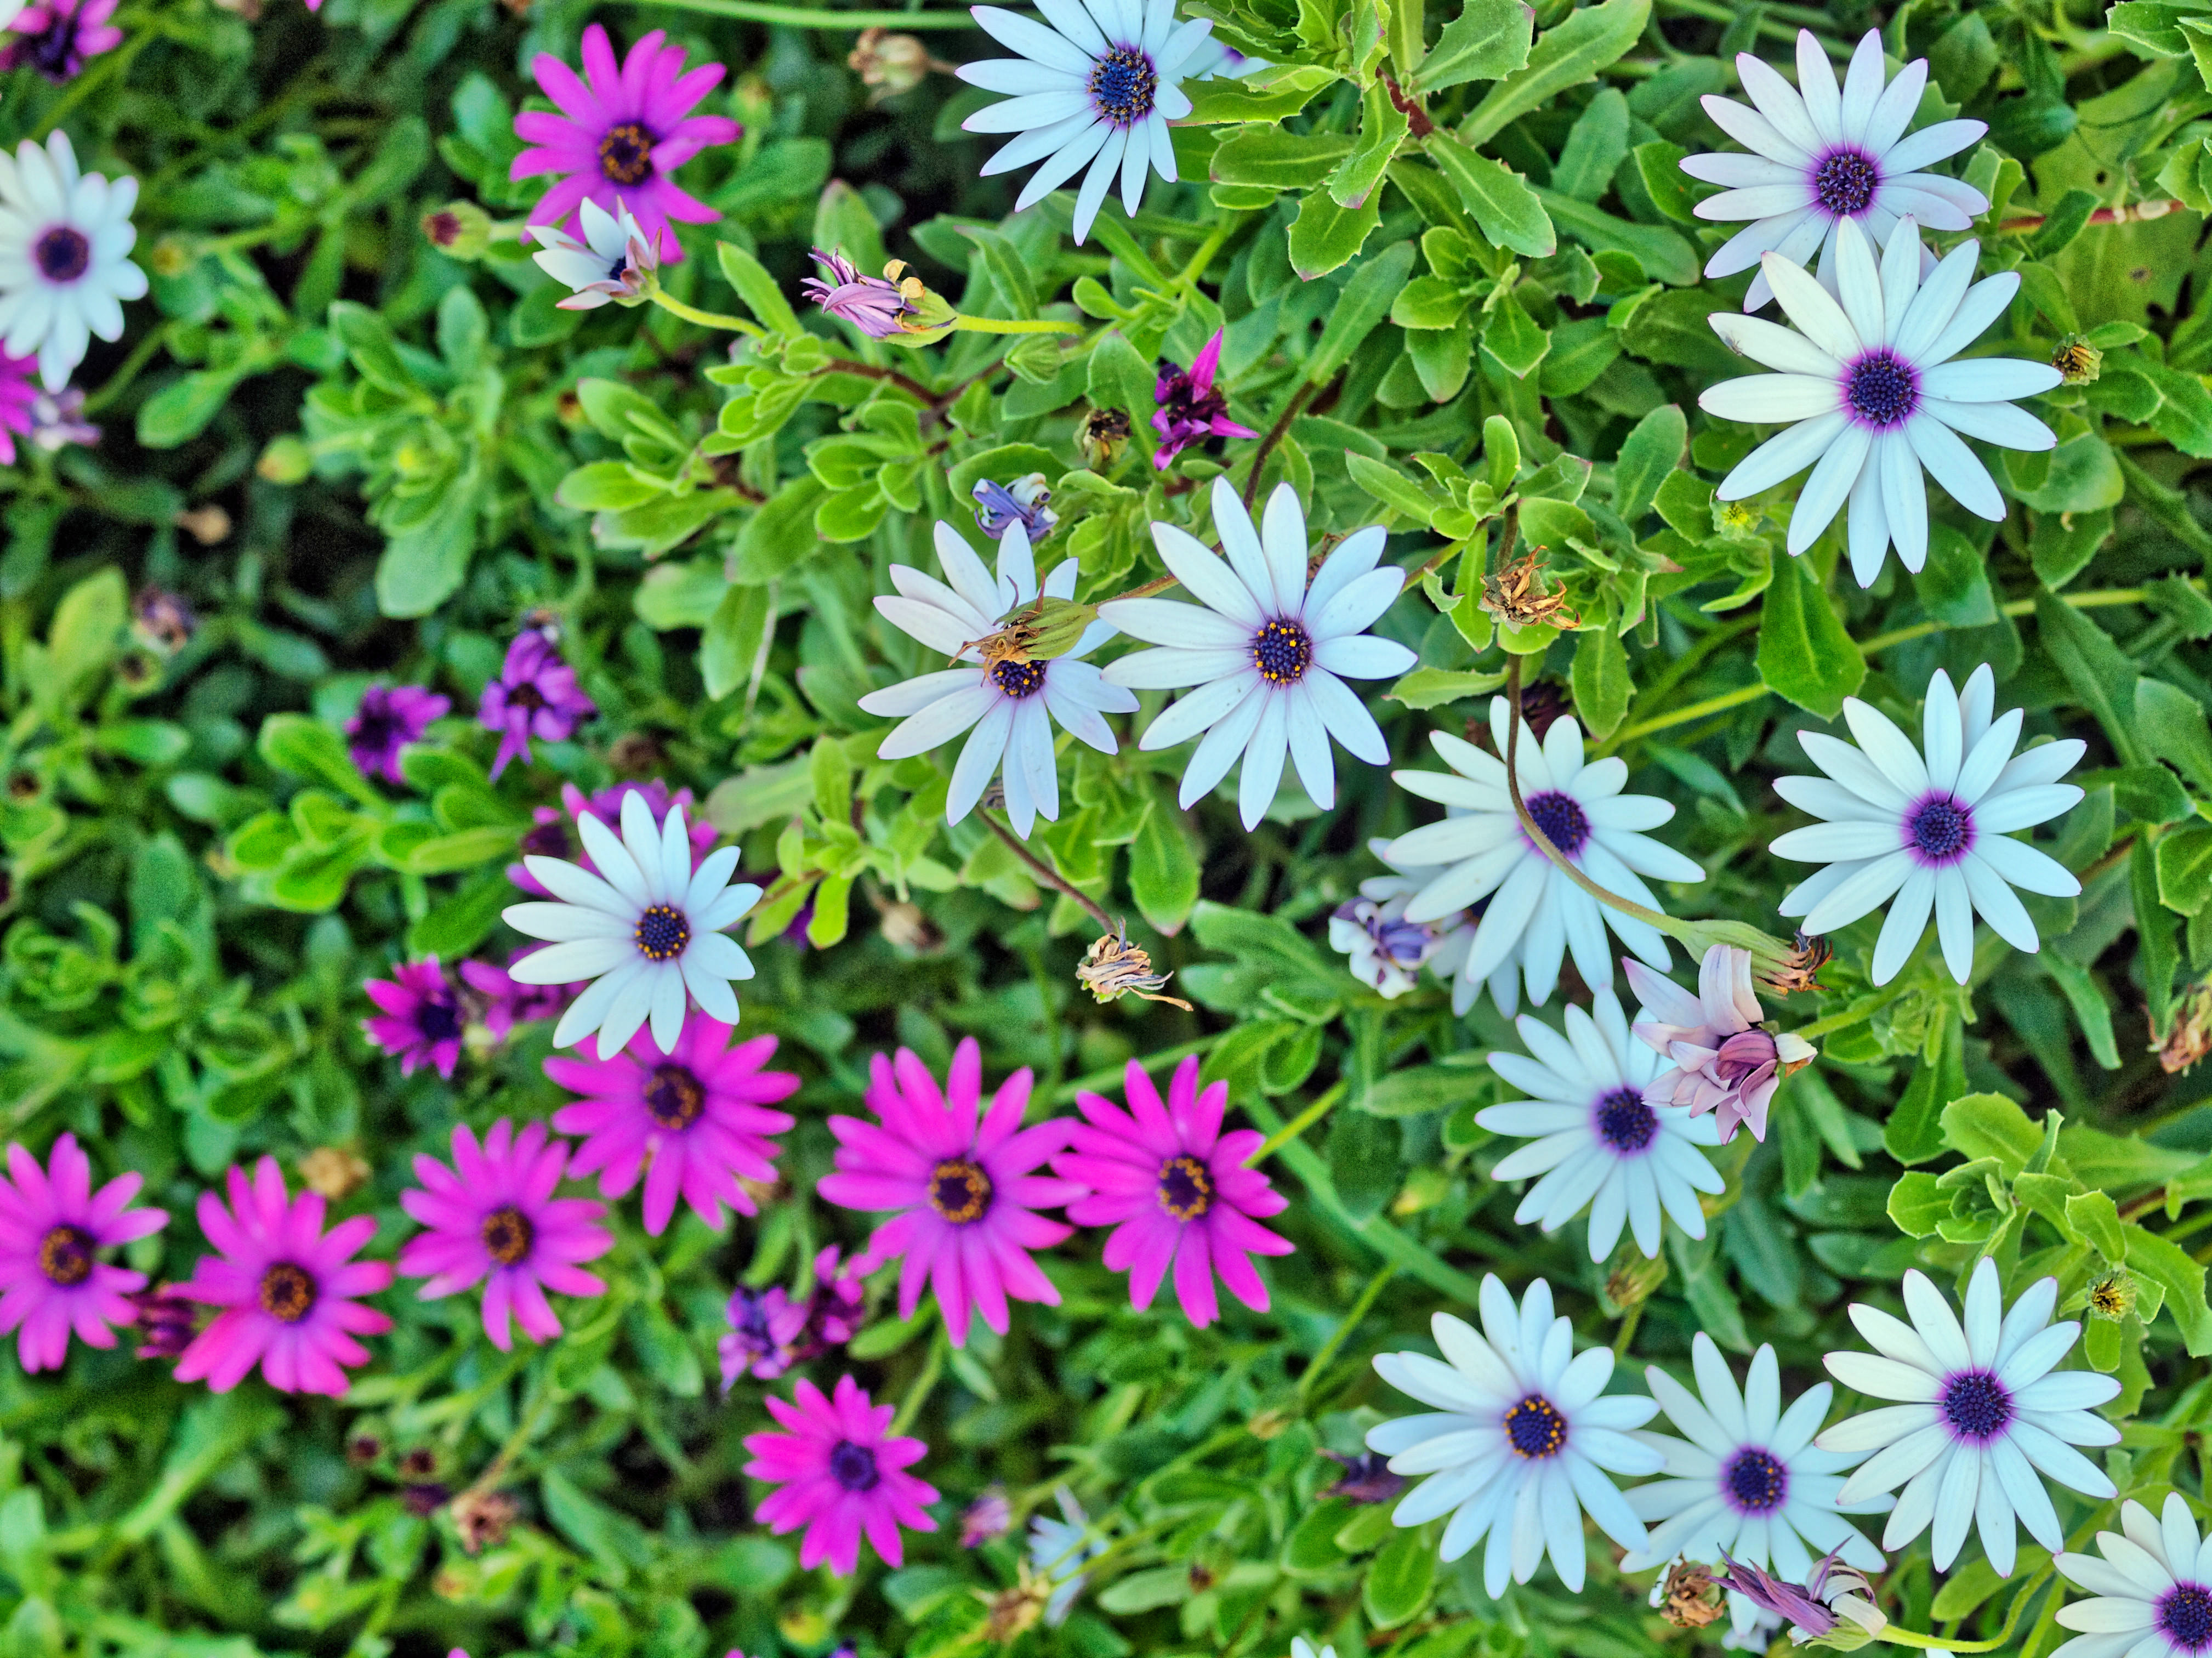 This should be Osteospermum-4.jpeg.  Is it missing?